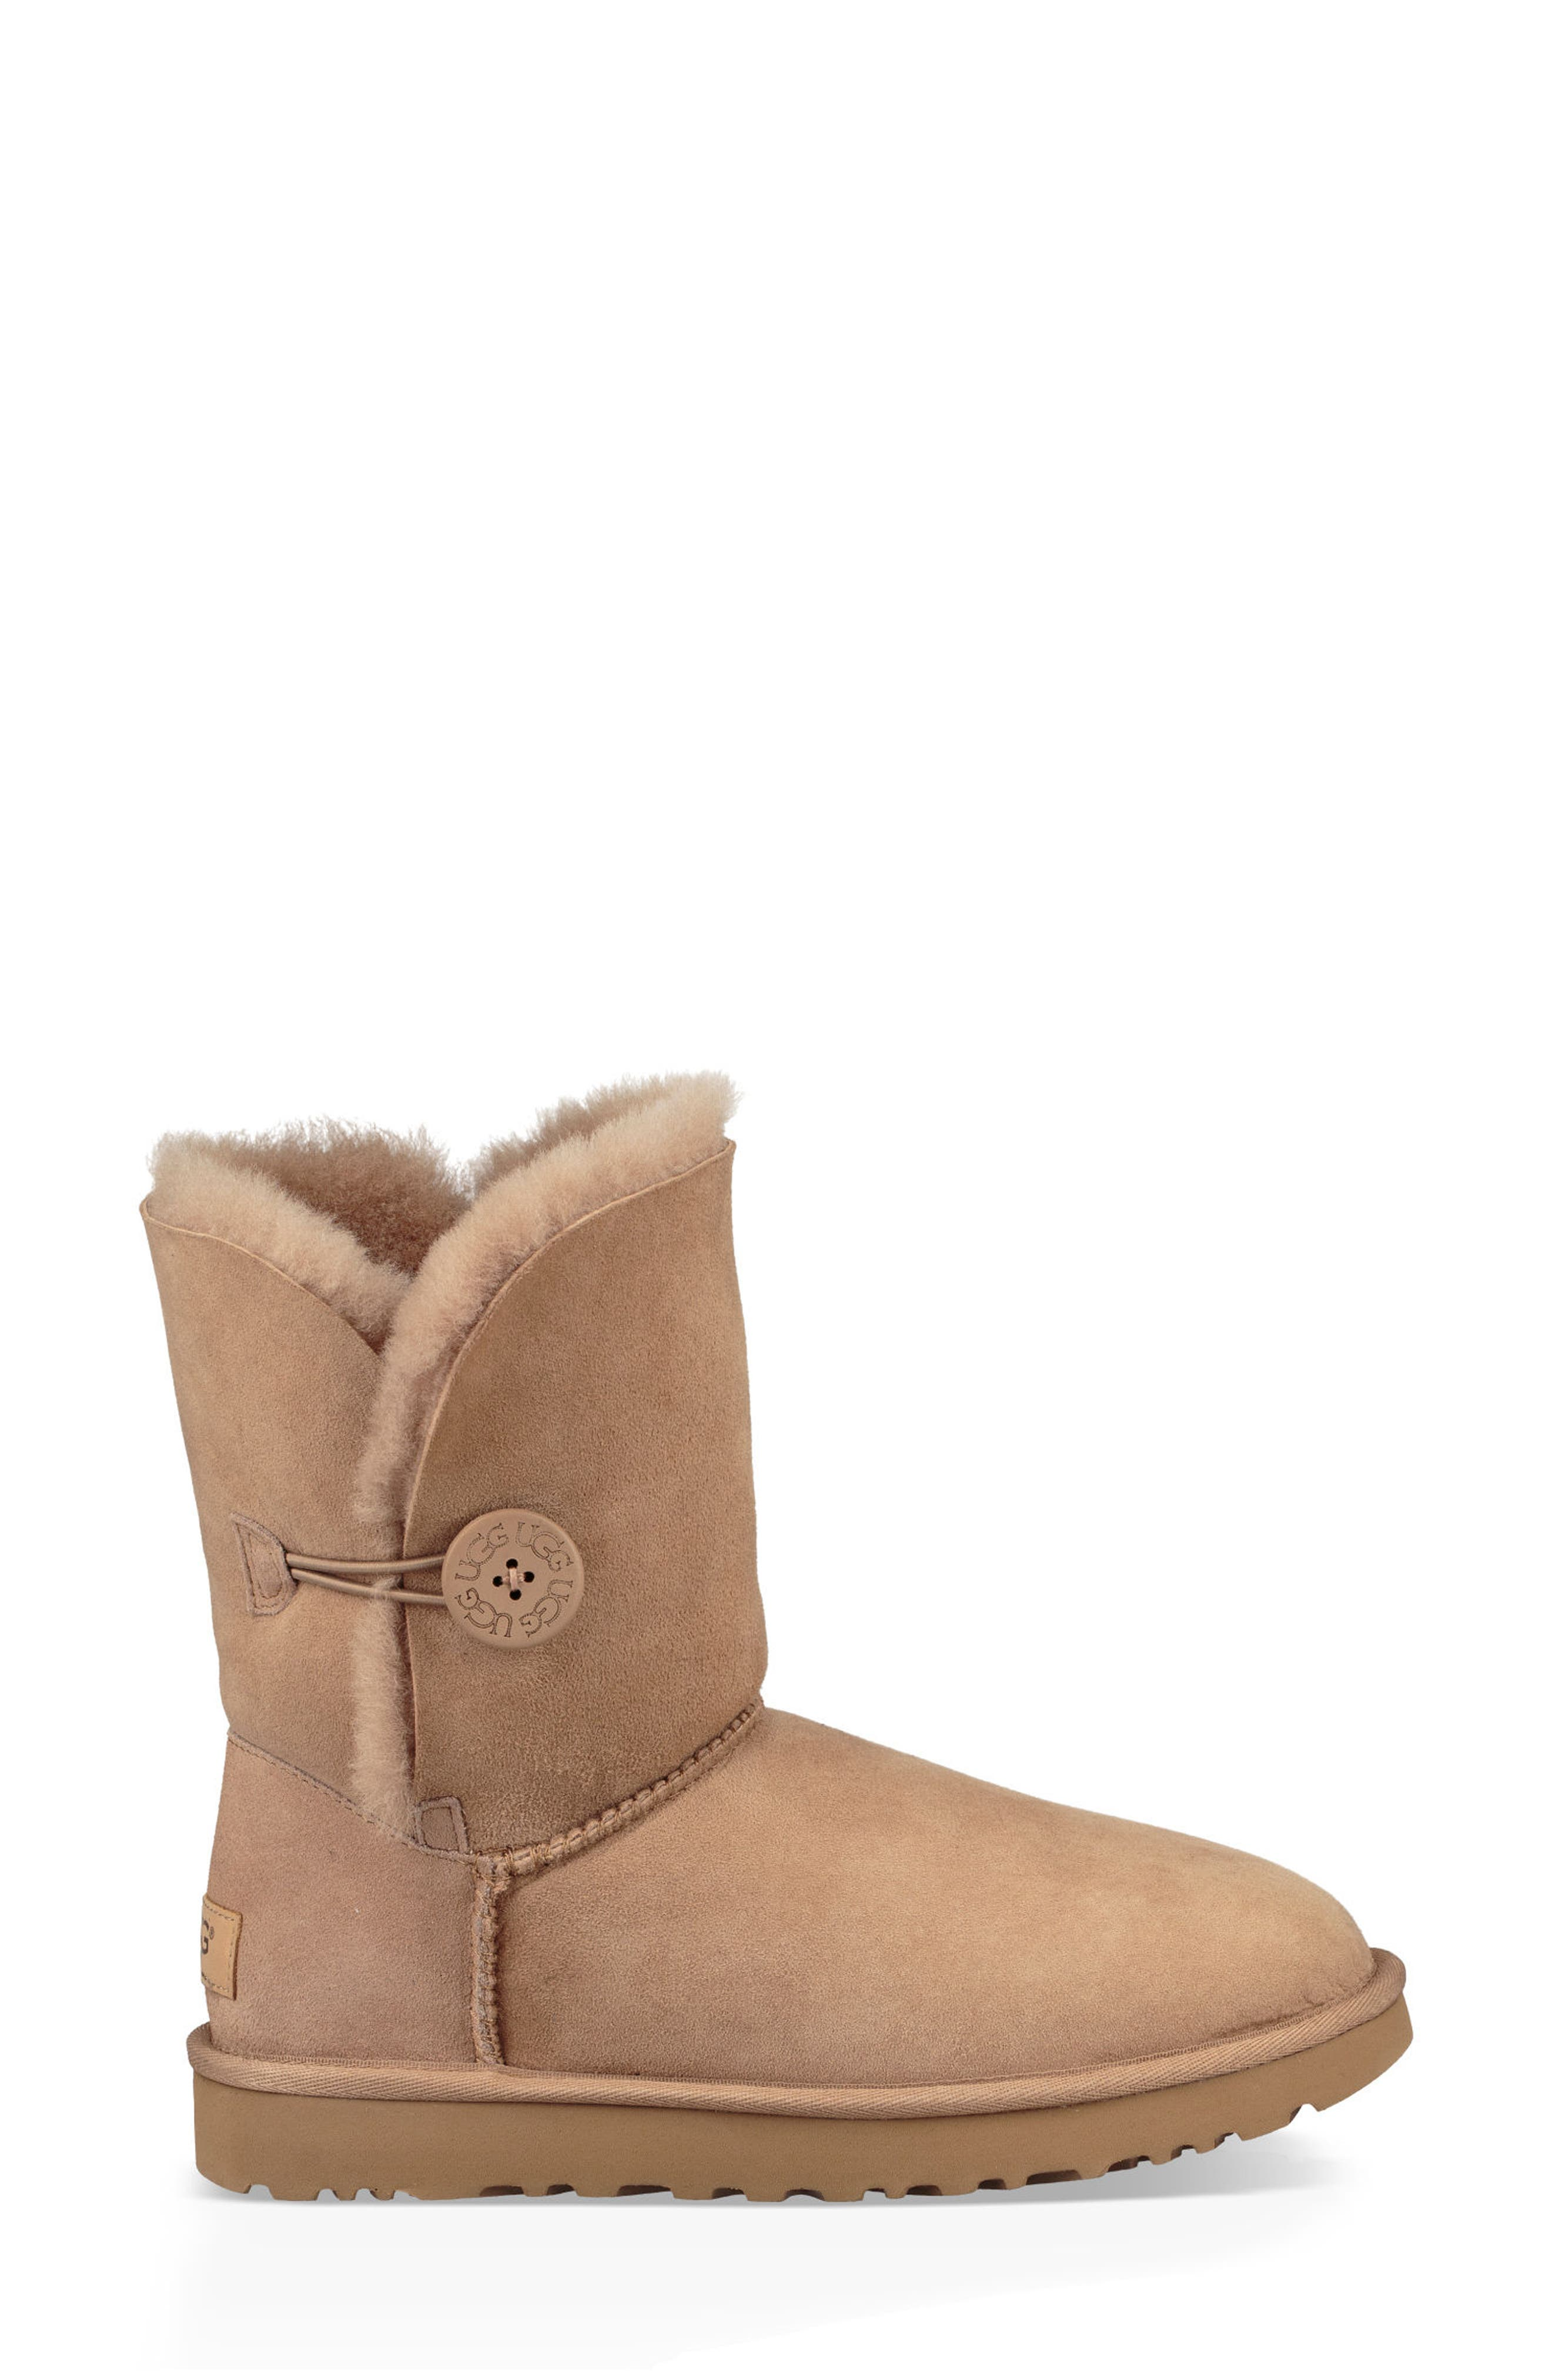 'Bailey Button II' Boot,                             Alternate thumbnail 3, color,                             Fawn Suede